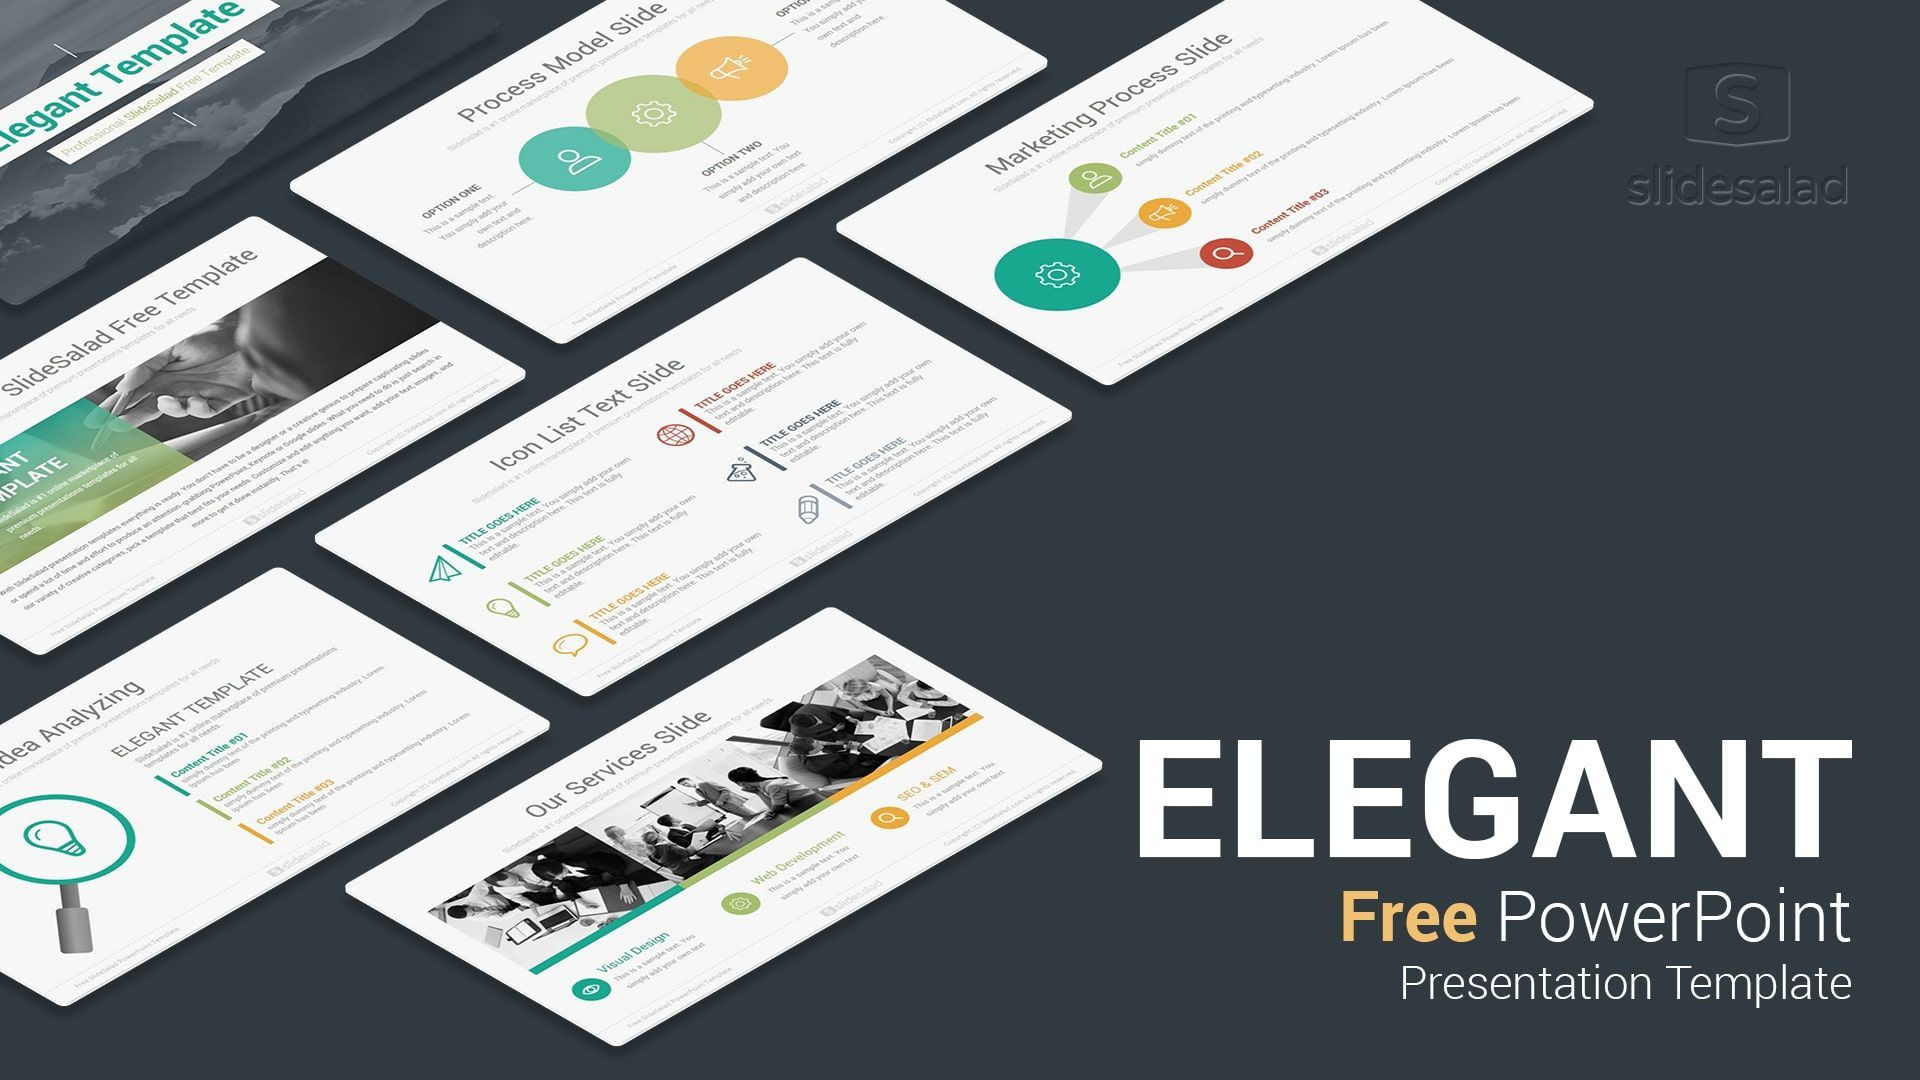 002 Remarkable Powerpoint Presentation Format Free Download High Def  Influencer Template Company Ppt SampleFull